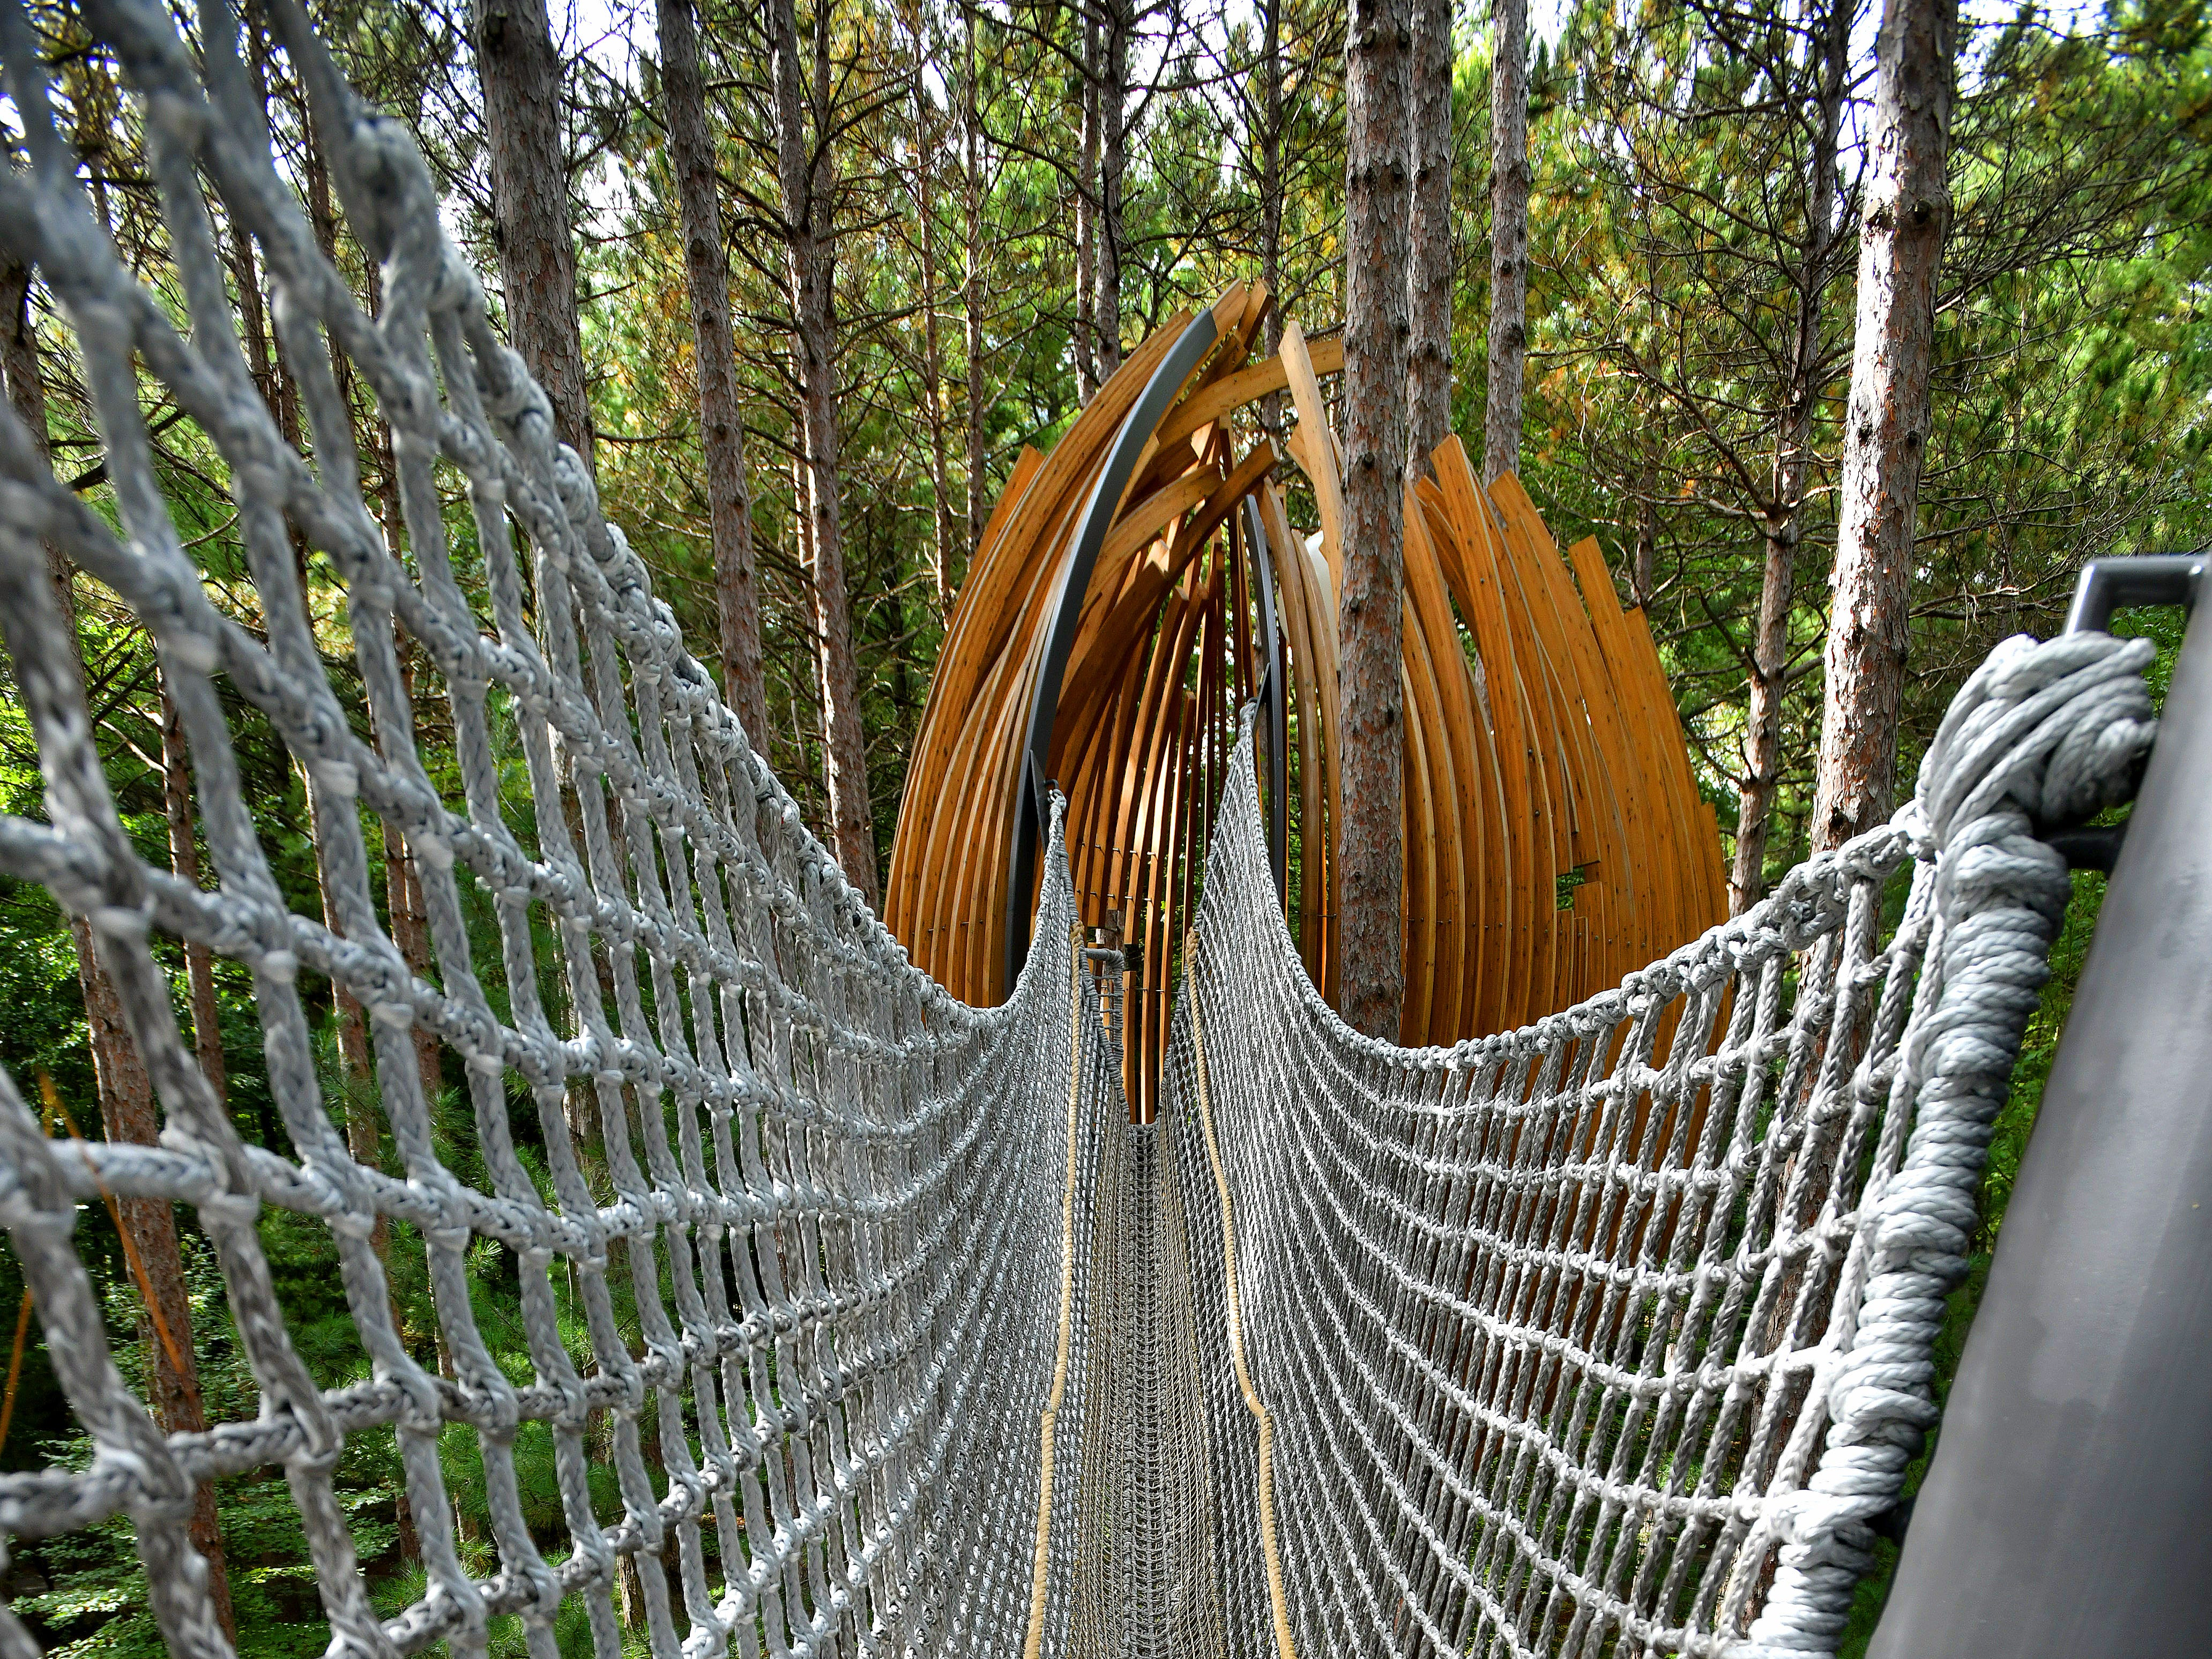 A rope bridge beckoning the adventurous stretches high above the ground at the new Canopy Walk in Midland.  Part of the Dow Gardens experience, the Canopy Walk was built in Whiting Forest to allow people to experience live in the tree tops.